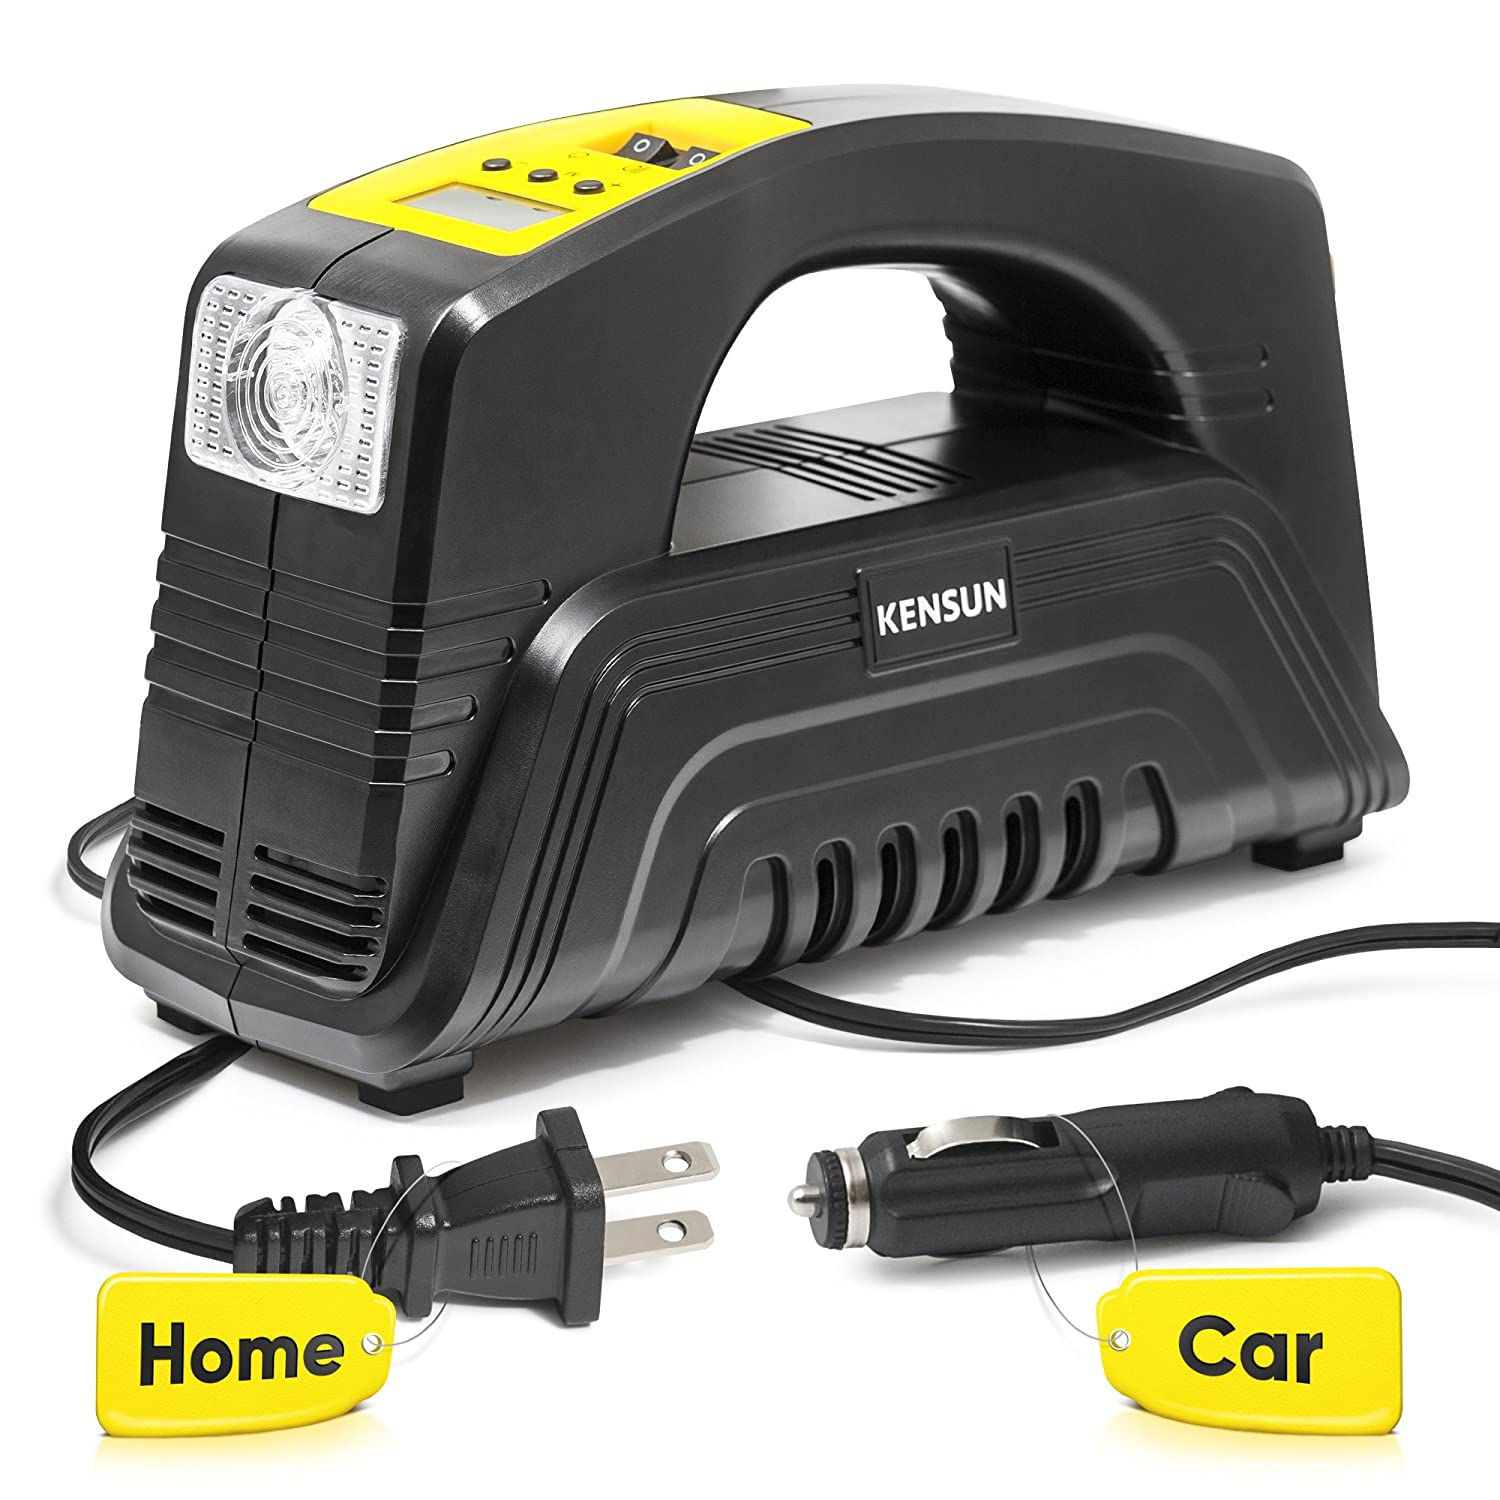 Kensun AC/DC Rapid Performance Portable Air Compressor Tire Inflator with Digital Display for Home (110V) and Car (12V) - 30 Litres/Min Kensun-EHRComp-A58A